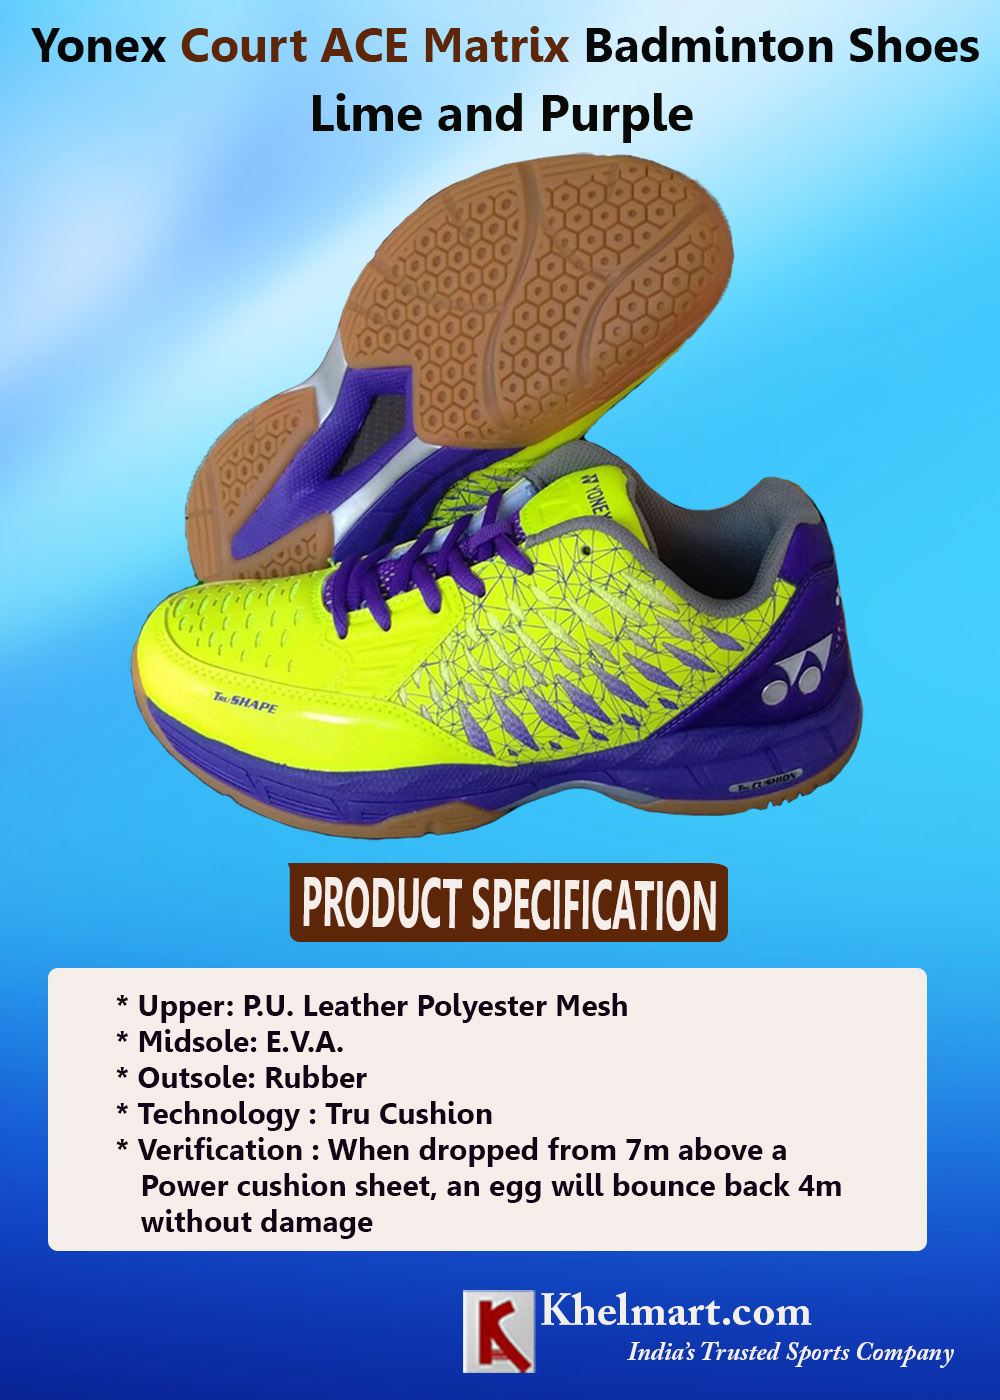 Yonex Court ACE Matrix Badminton Shoes Lime and Purple_2